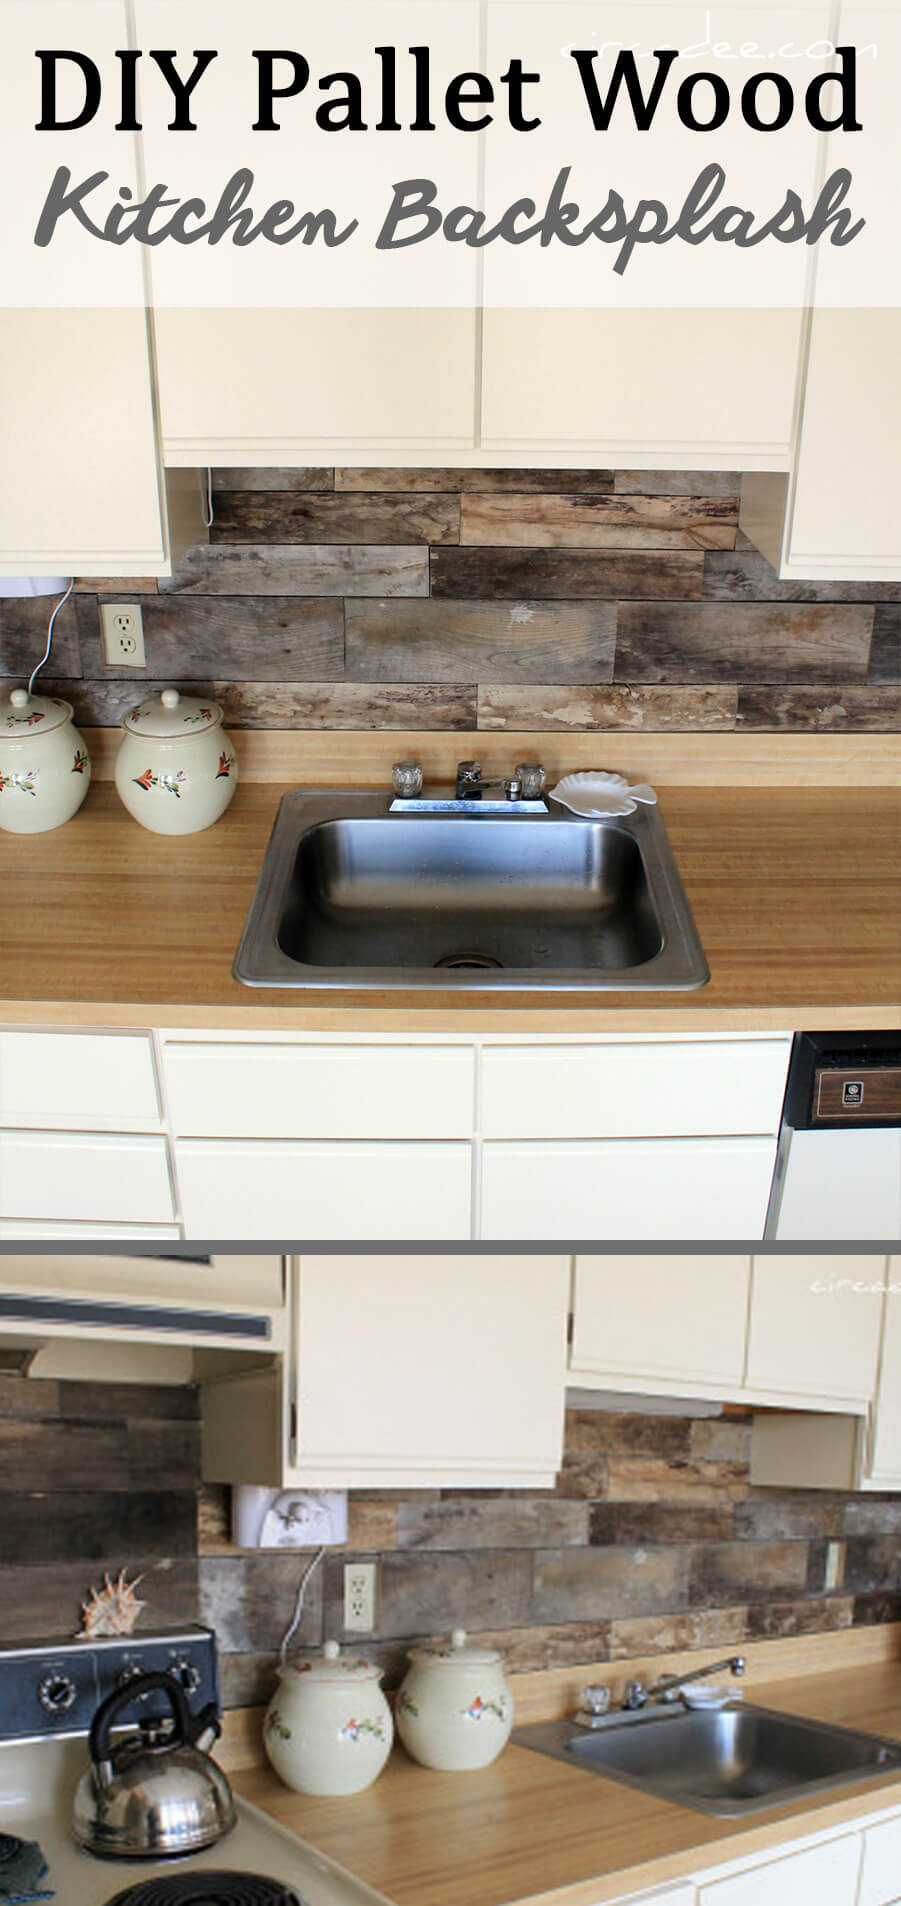 25+ Best DIY Kitchen Backsplash Ideas and Designs for 2020